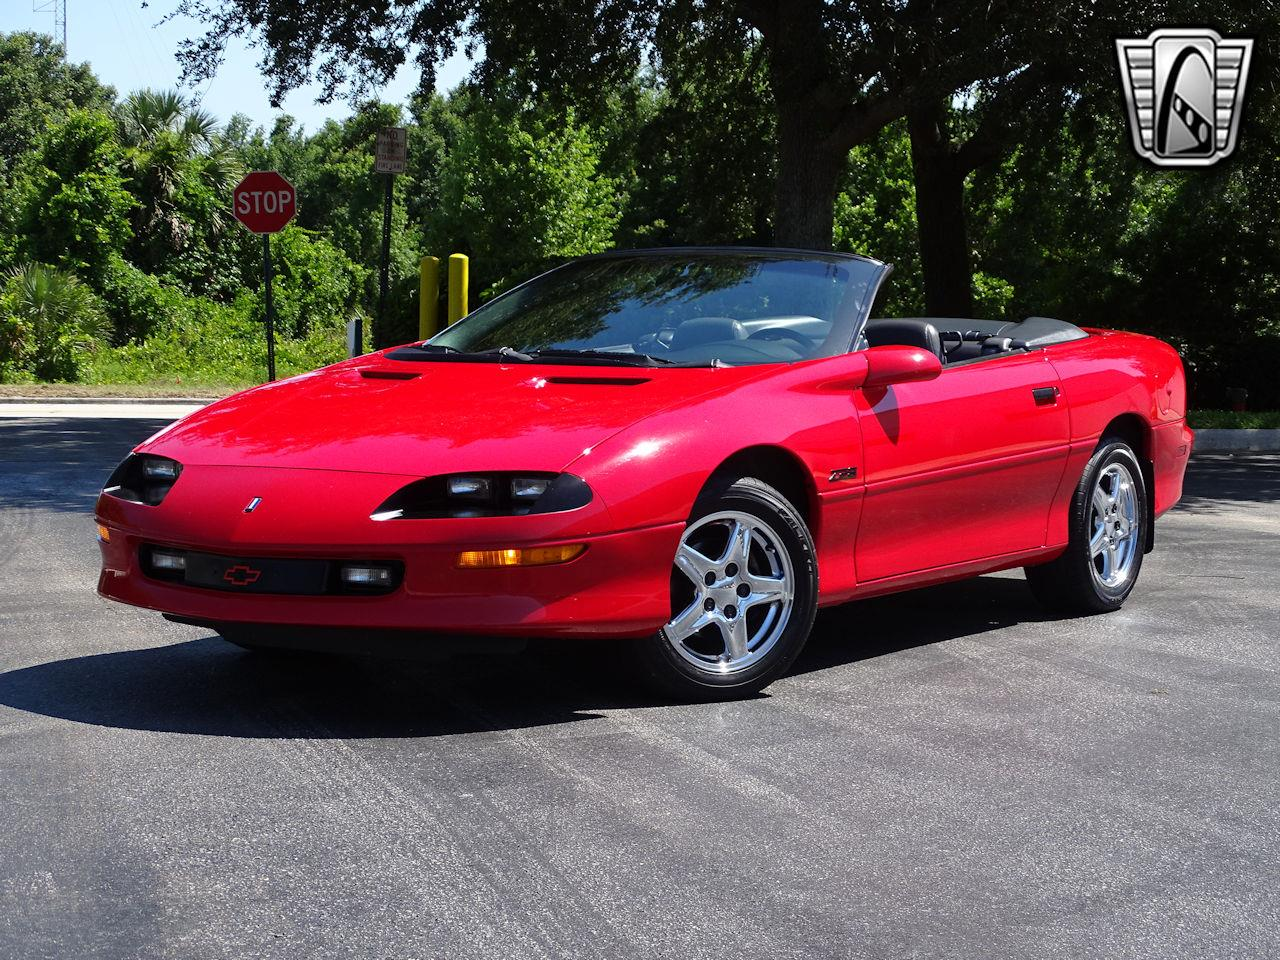 1997 Chevrolet Camaro (CC-1351694) for sale in O'Fallon, Illinois